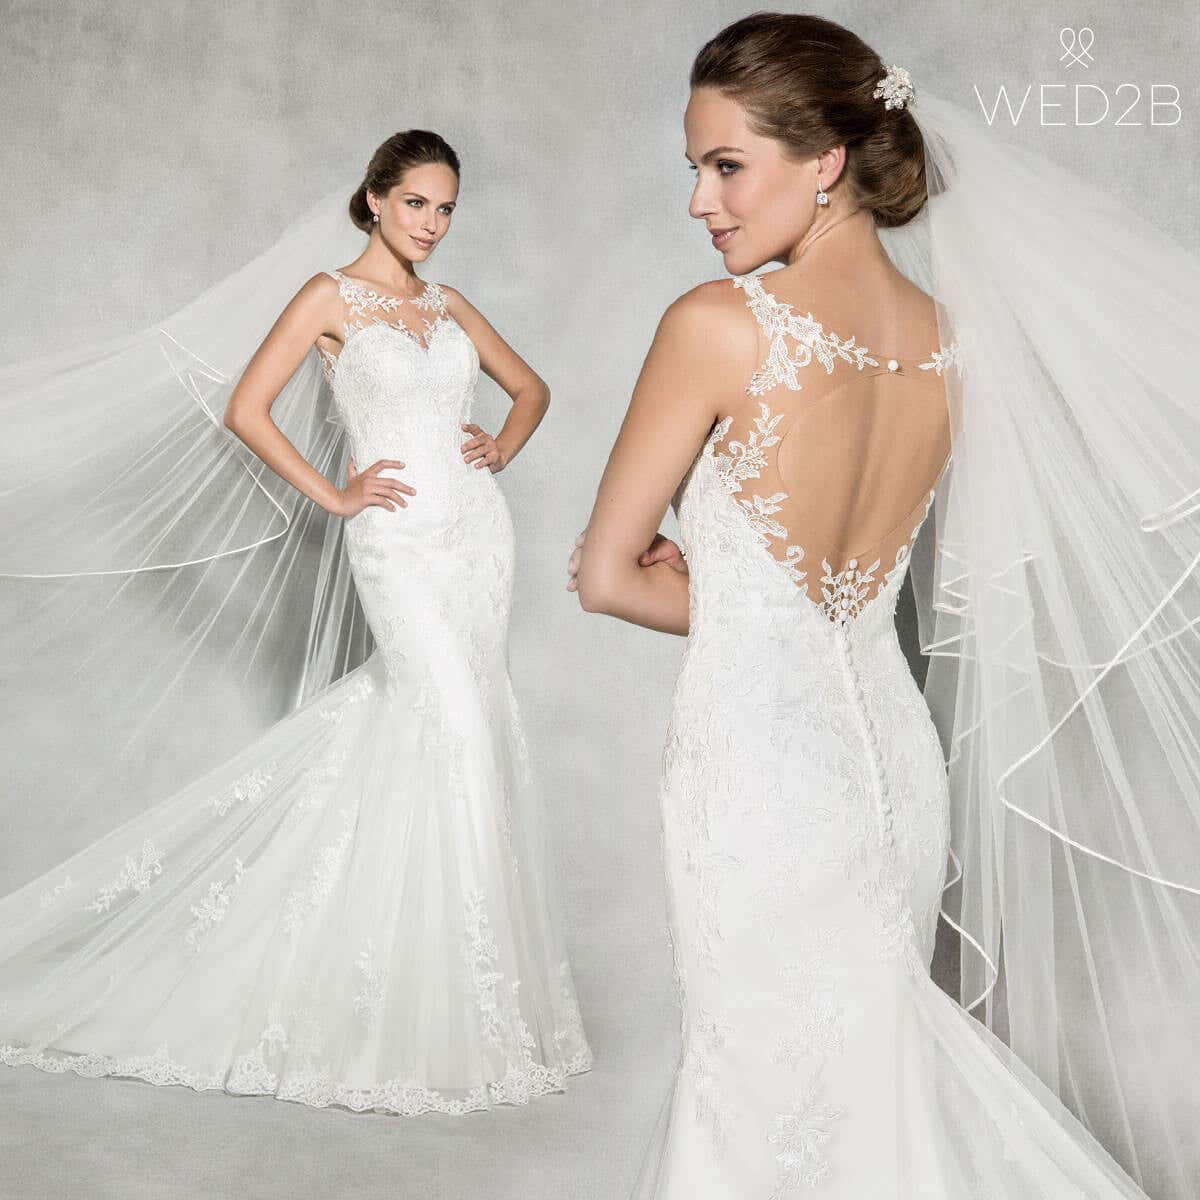 A wedding dress style guide for tall brides - WED5B UK BLOG